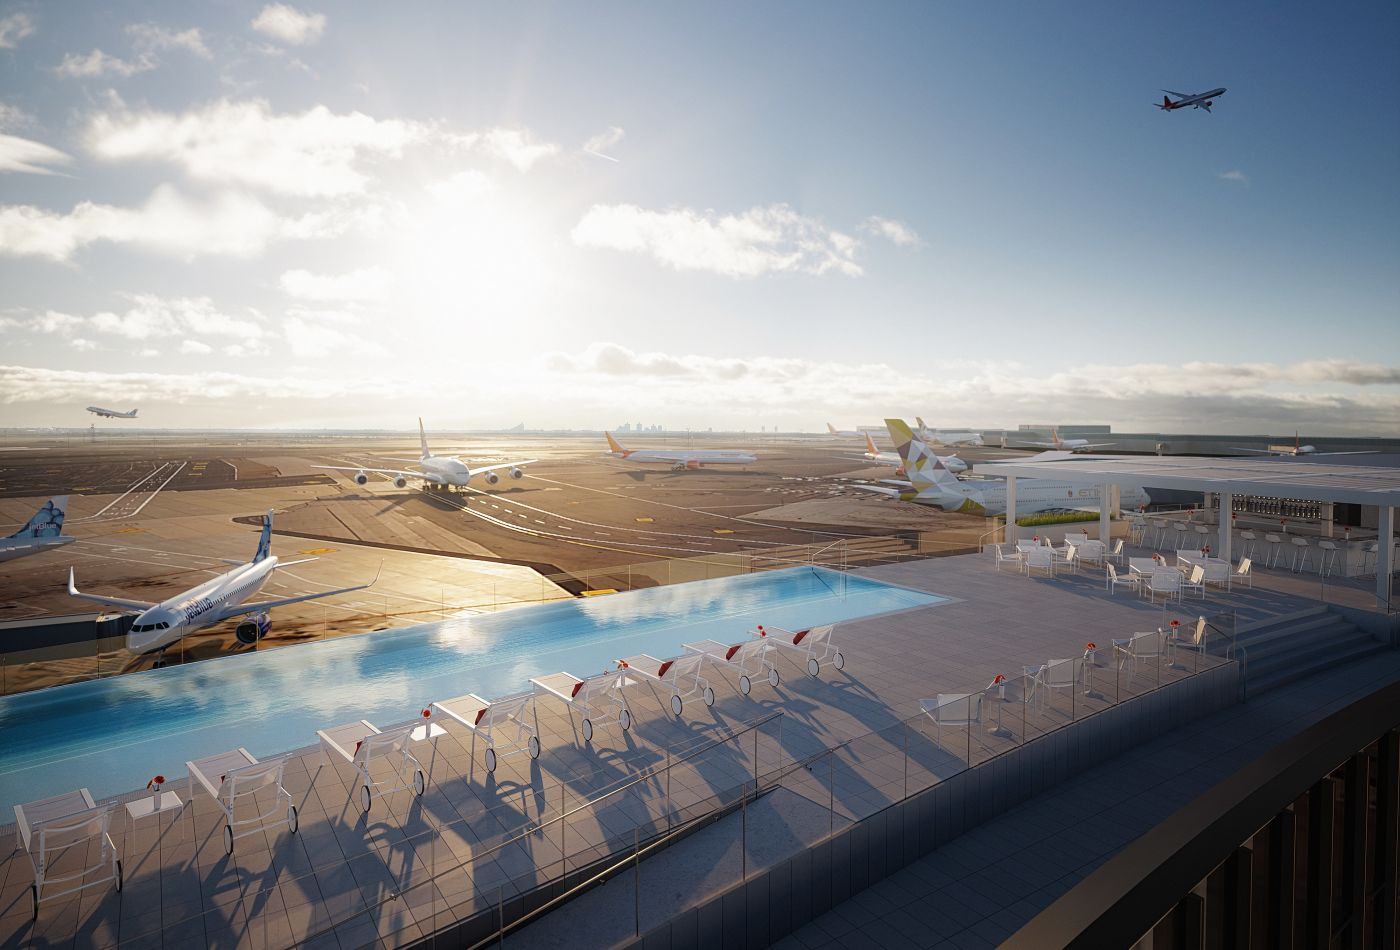 TWA Hotel At JFK is Getting A Rooftop Pool With Views Of The Runways